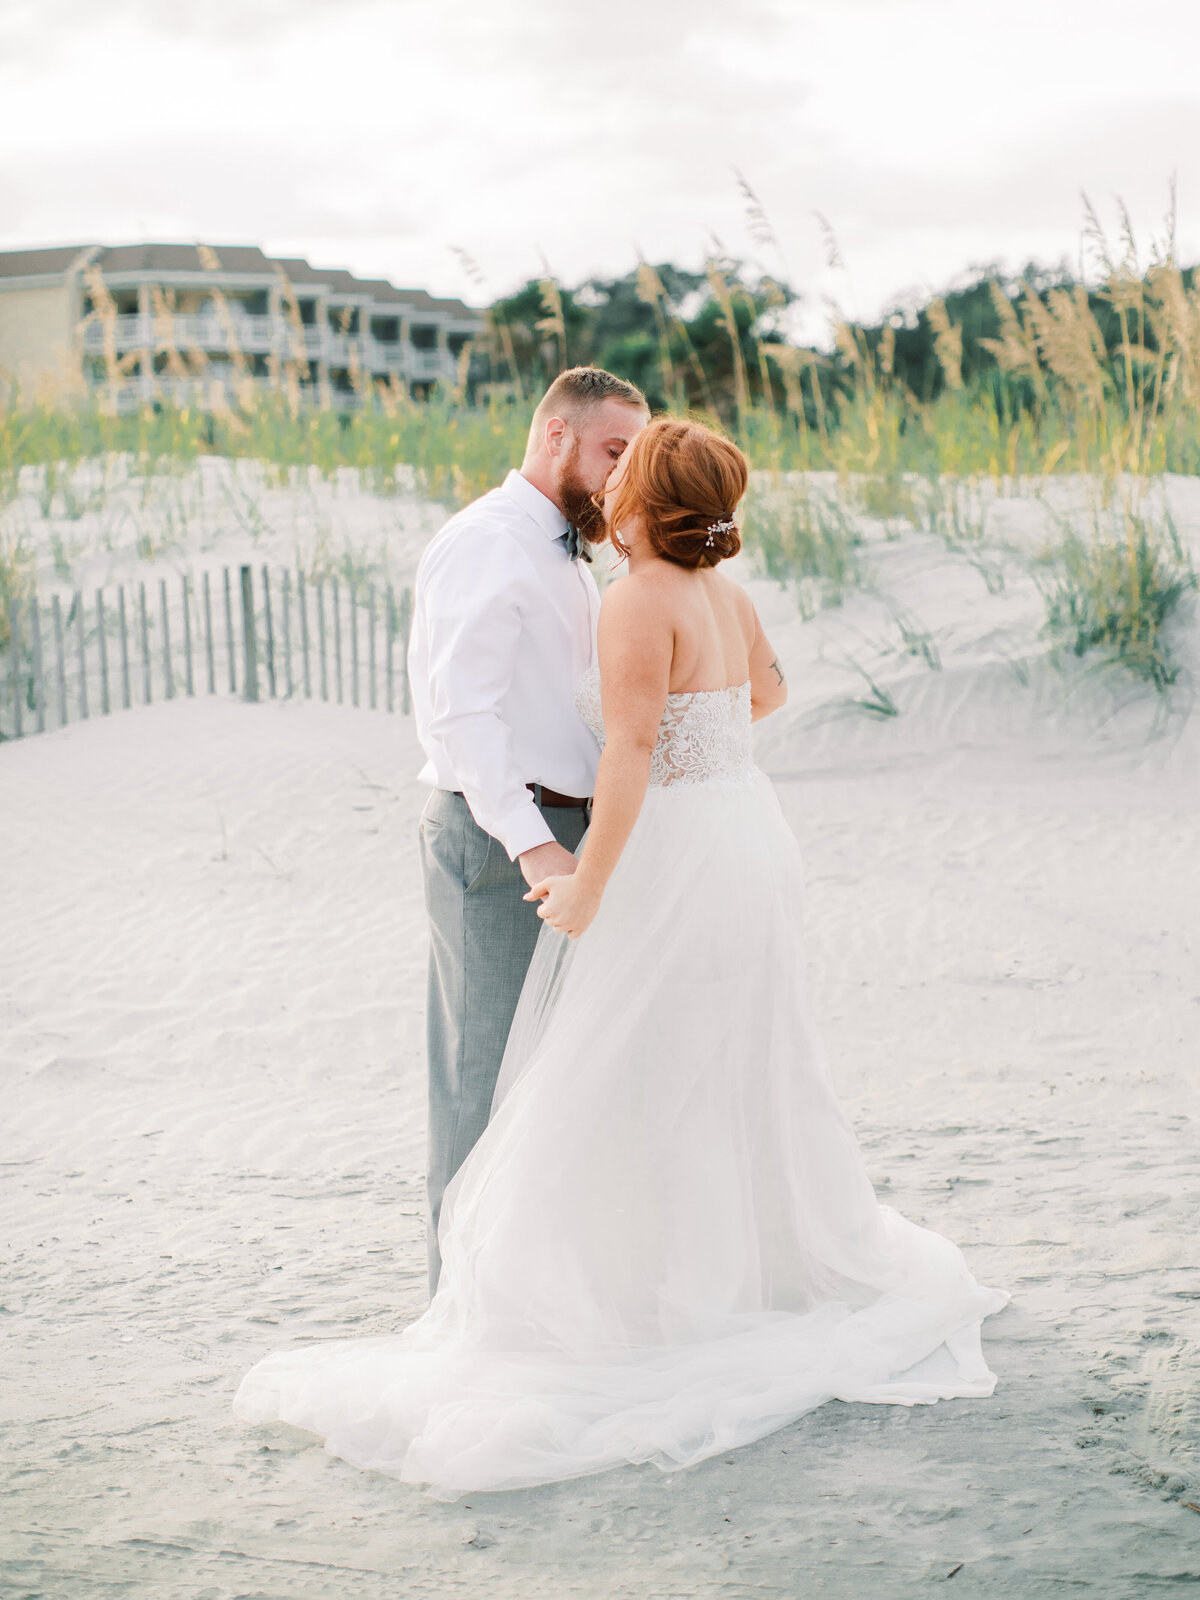 Charleston Wedding Photographer | Beaufort Wedding Photographer | Savannah Wedding Photographer | Santa Barbara Wedding Photographer | San Luis Obispo Wedding Photographer-13